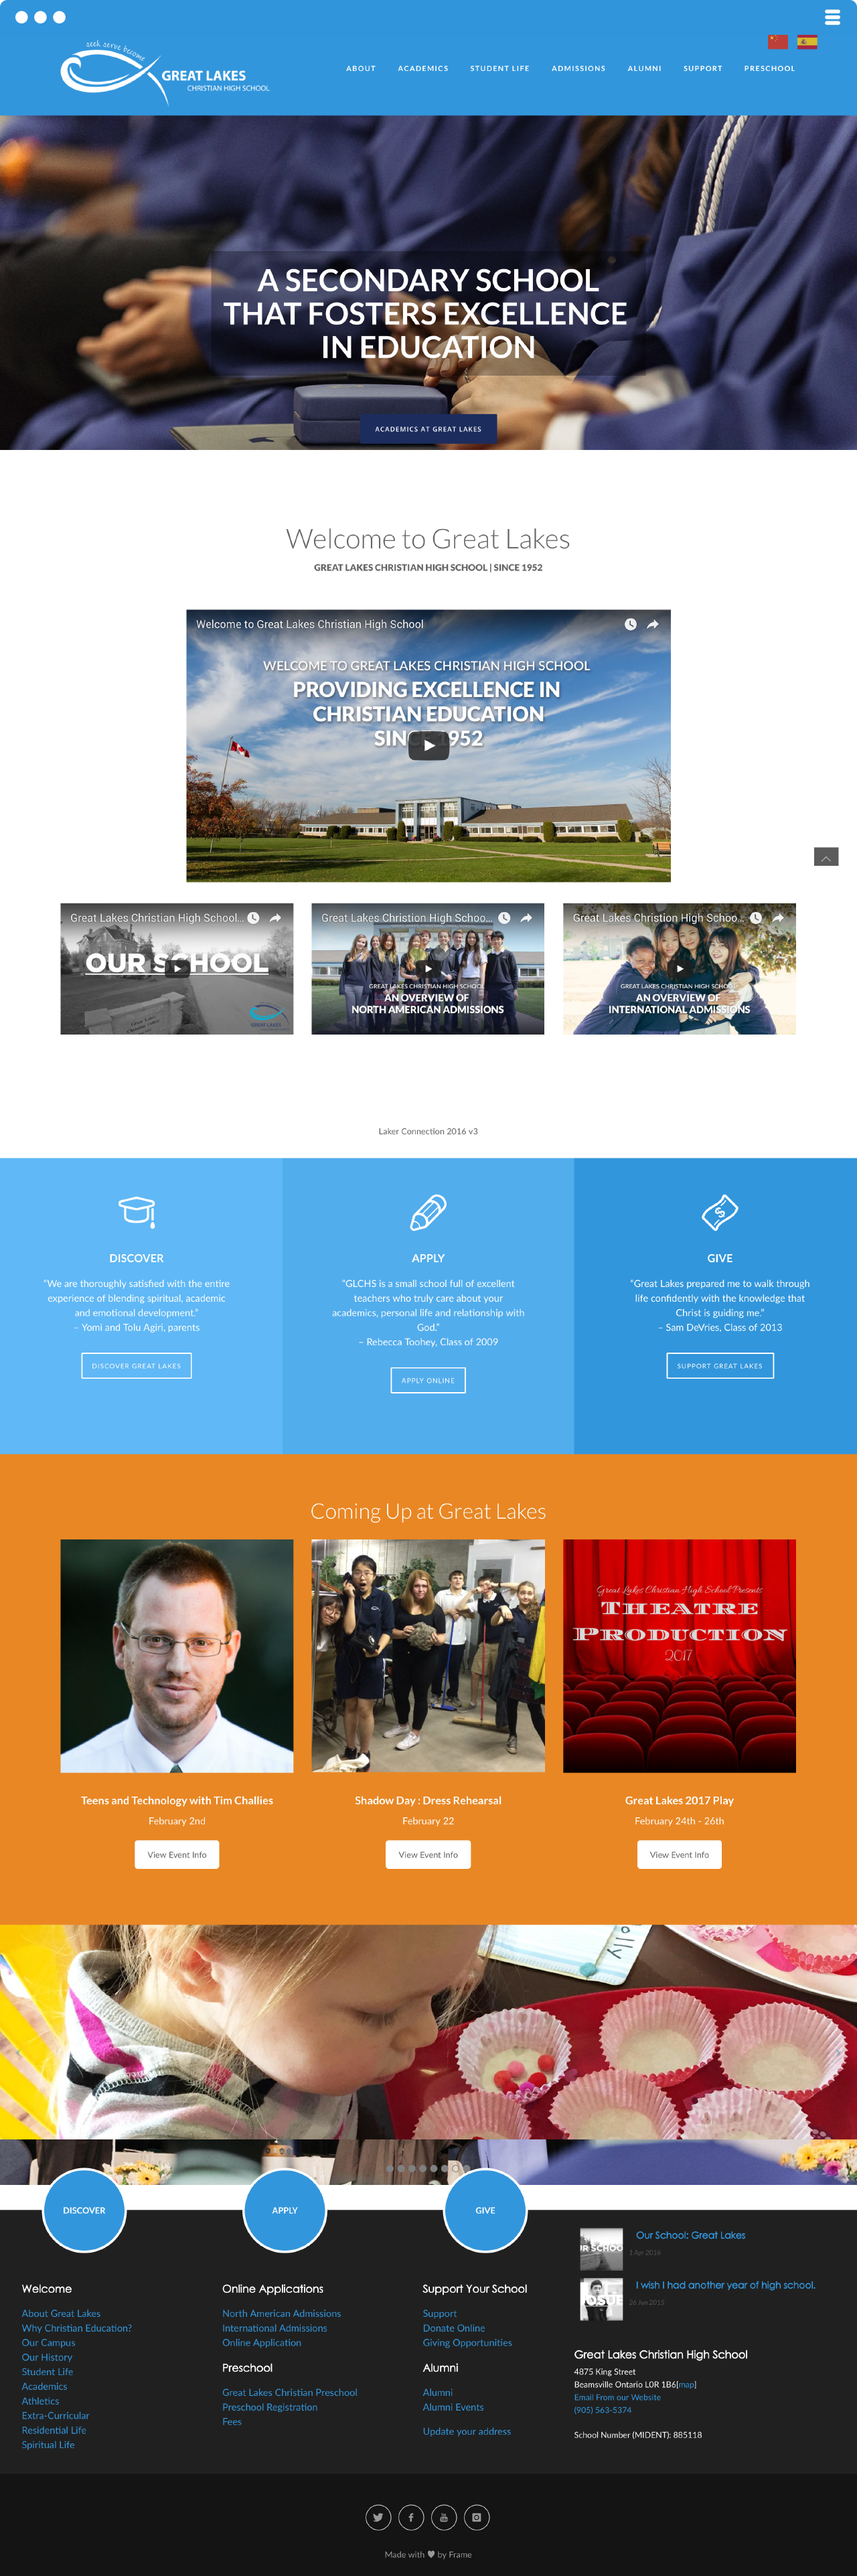 Great Lakes High School Website Design & Development Made By Frame